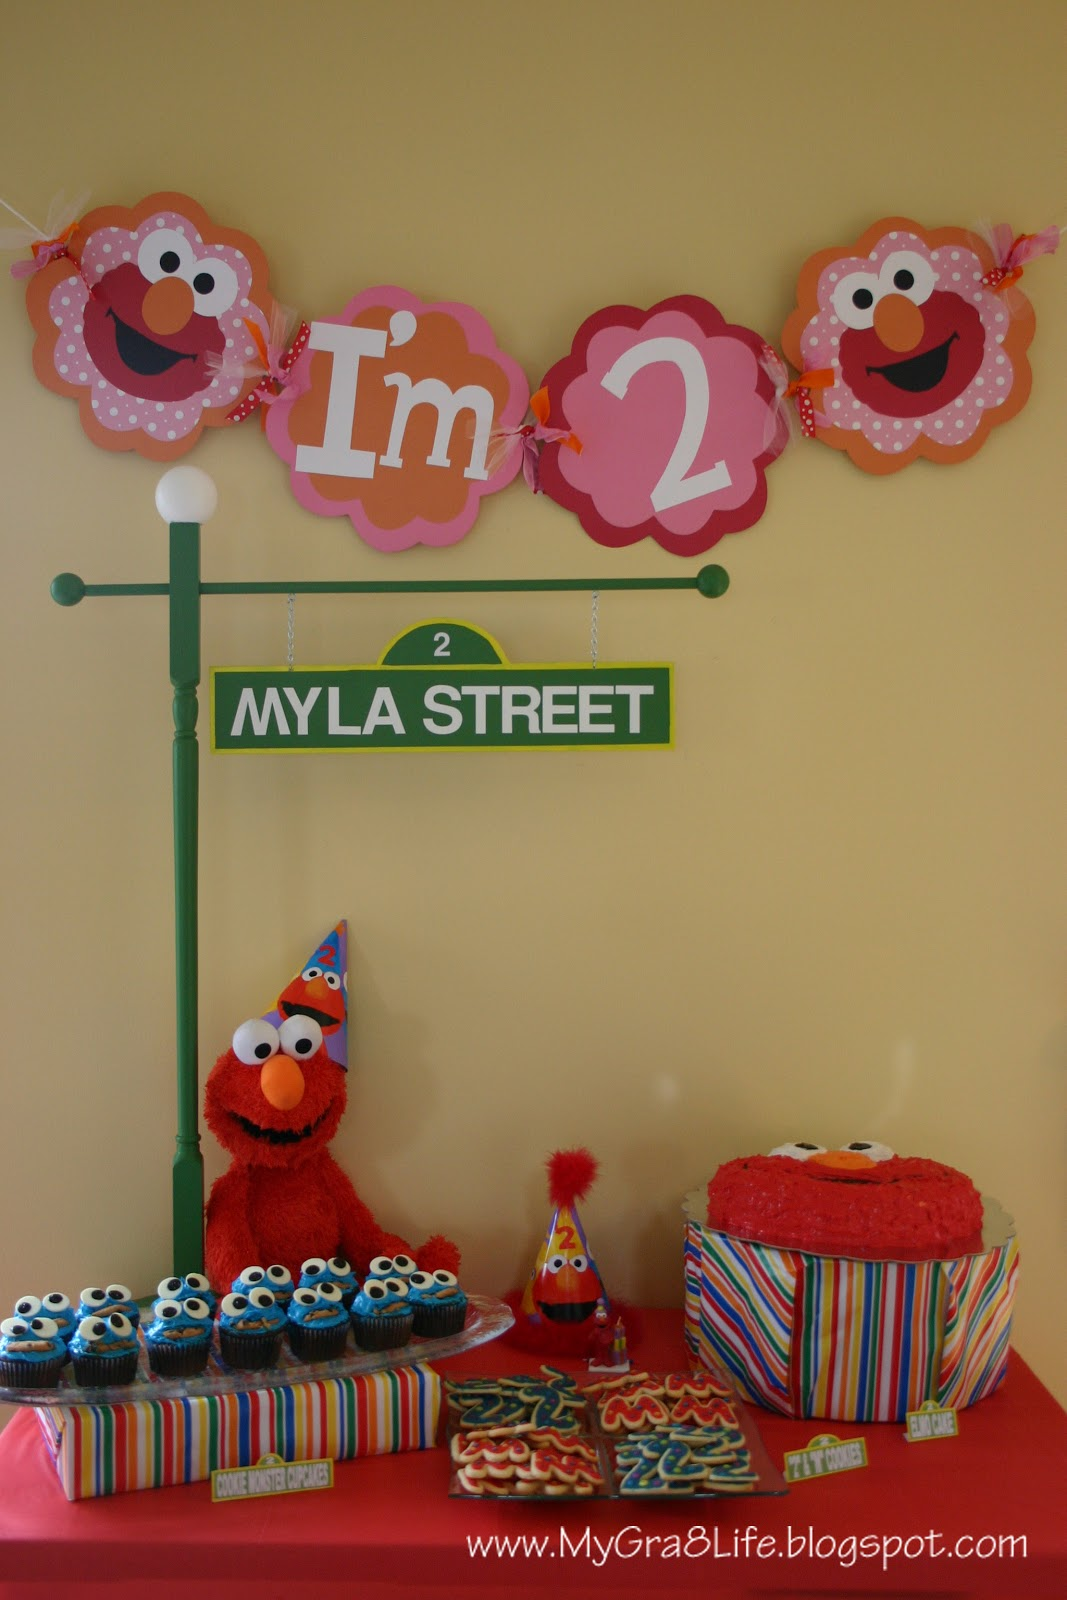 Above Is The Completed Look Of Dessert Table Including Banner Myla Street Sign Cake Cupcakes Cookies And Stuffed Elmo